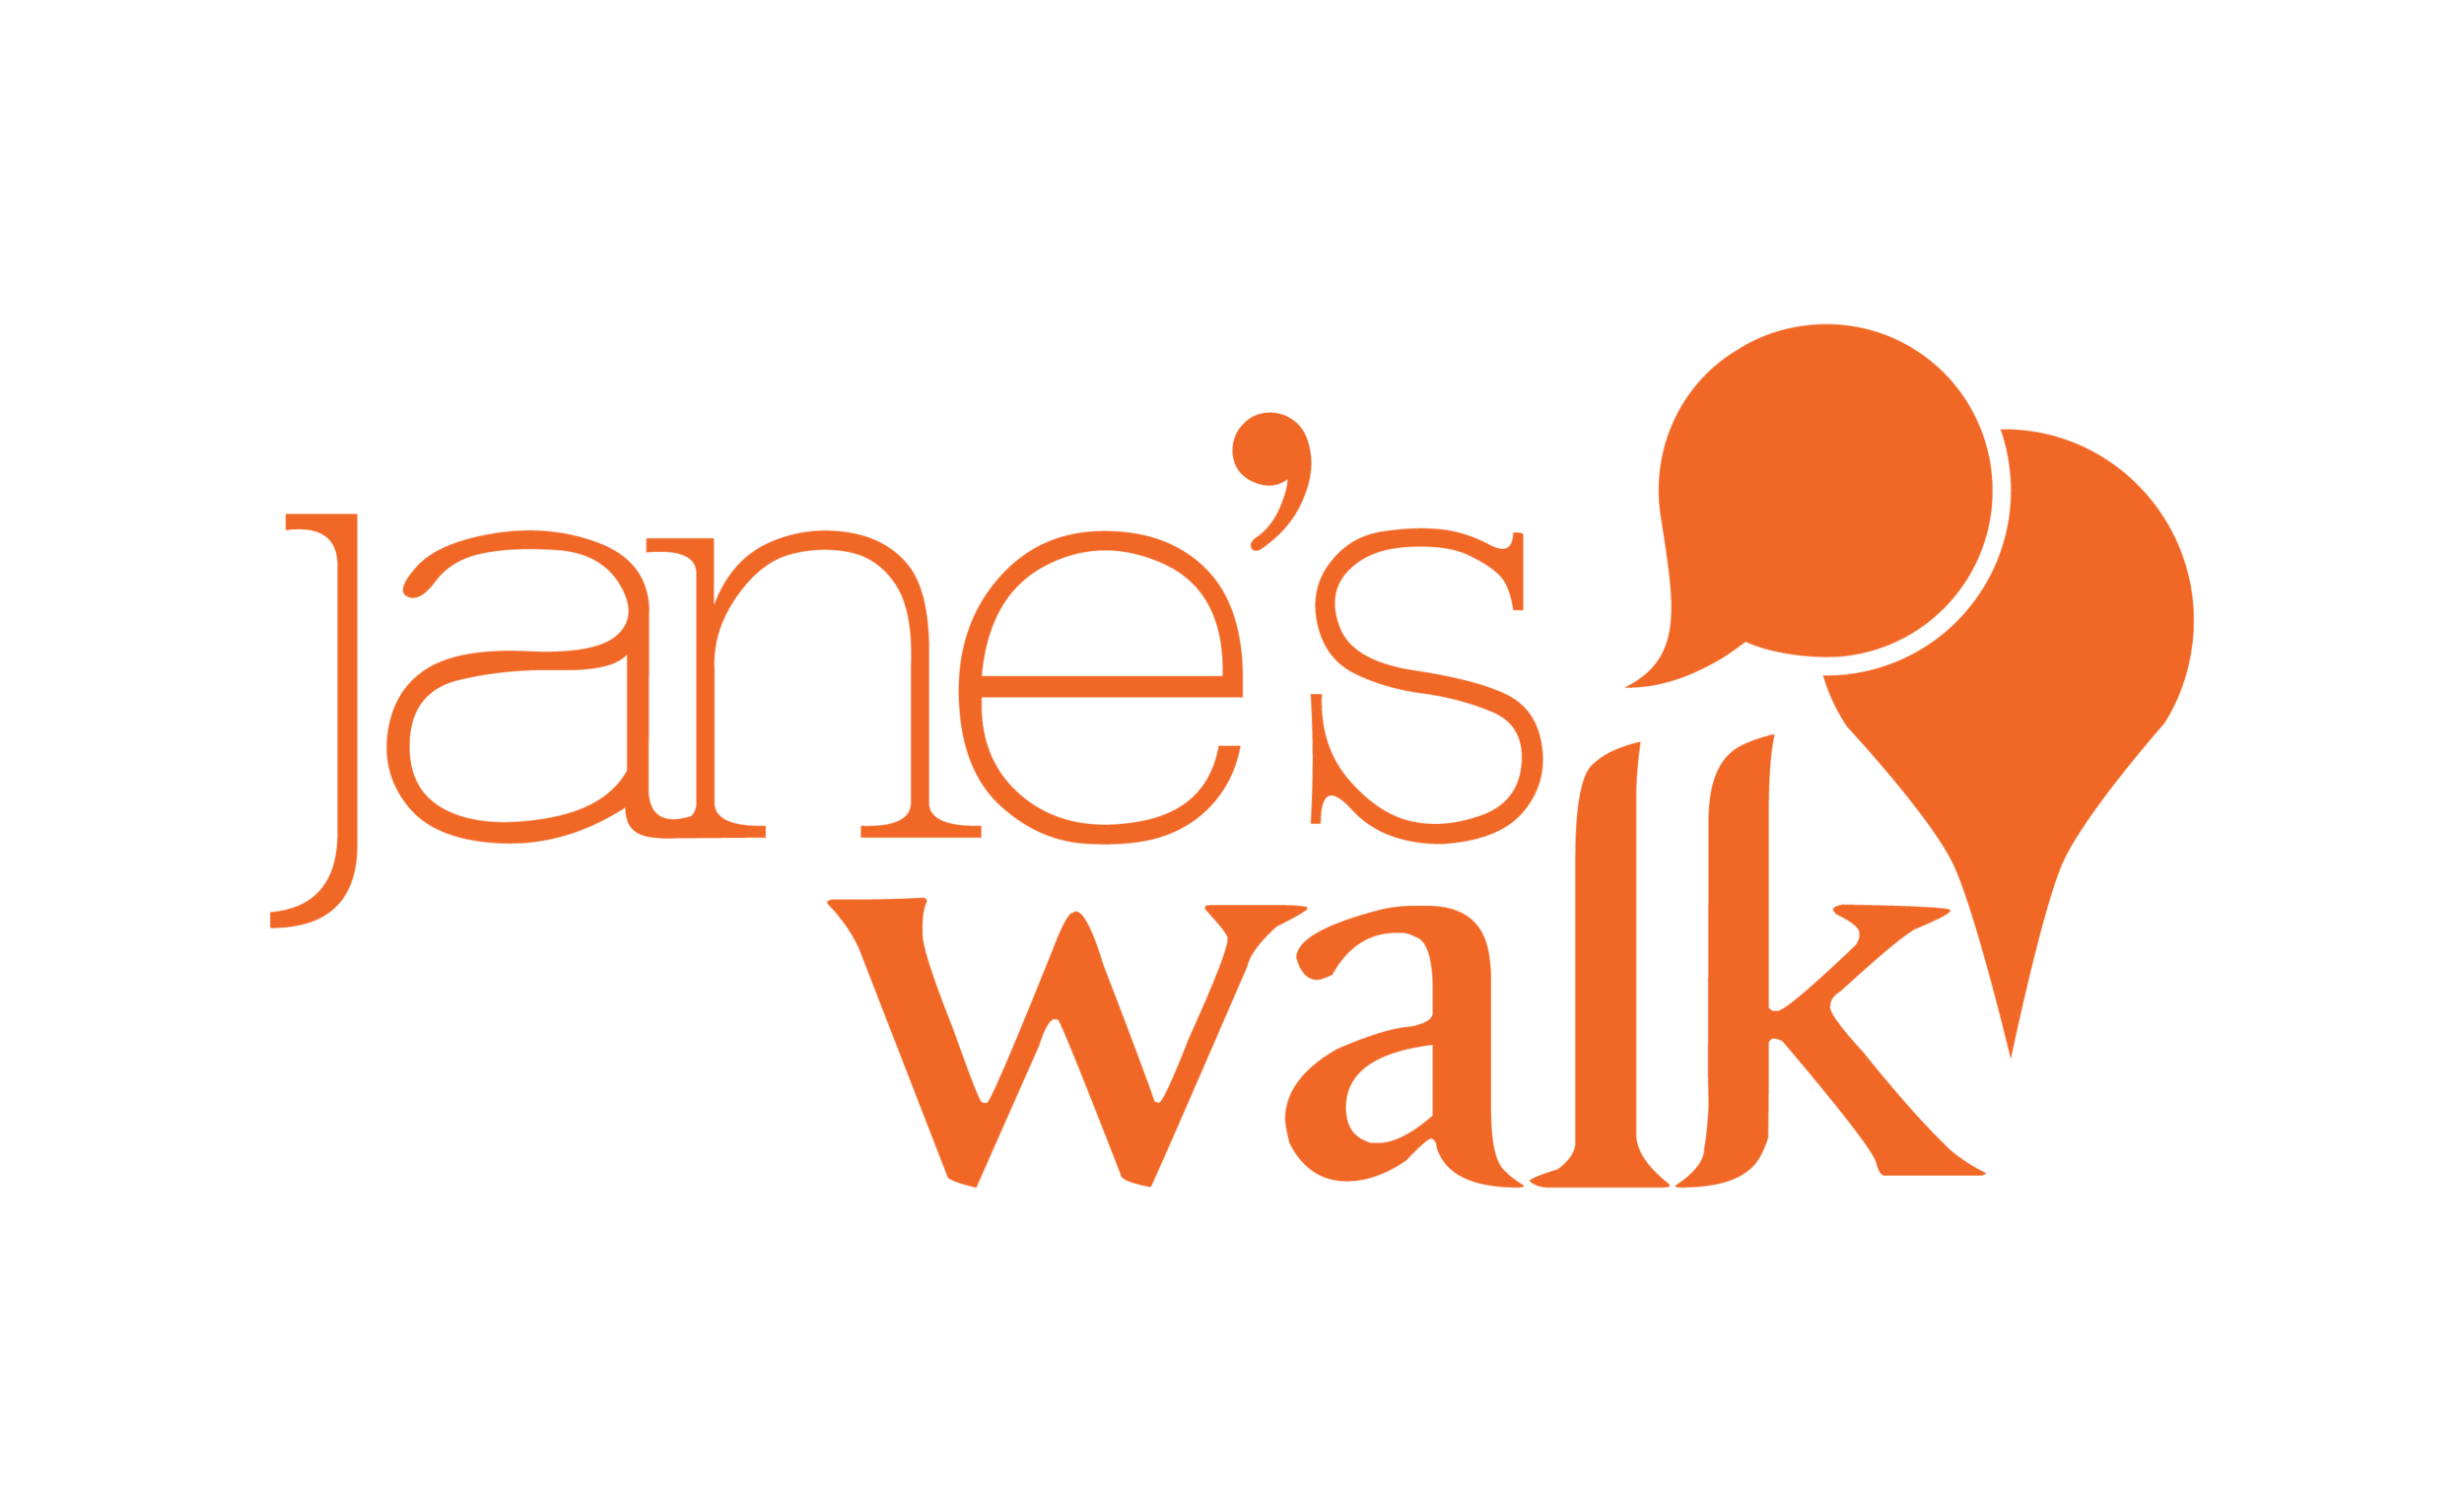 """Jane's Walk Toronto 2019 - """"The hiring of G2 PR + Events for Jane's Walk Toronto 2019 was an exciting step for our Steering Committee. We were immediately inspired by their energy and fresh ideas. With the Festival now more than 10 years old, we felt it was important to look outside the downtown urbanist core to find a team that would bring a different perspective. And they delivered!Juan's tenacity and goodwill with media contacts was stellar. We recorded a great return on his outreach and Toronto remains well aware and inspired by Jane's Walk to this day.The planning and execution of all tasks regarding the Festival launch were very professional. Their management of equipment bookings, space and finding resources was highly organized. Their attention to detail was obvious when seen through the lens of a party guest. Creative, fun and energetic! And that energy flowed through into the Festival weekend. We had a wonderful turnout and a huge diversity of walks. They have made a mark on the city through their work.I would recommend G2PR for any event management and engagement activities. They were a joy to work with.""""-Geraldine Cahill, Director Jane's Walk"""